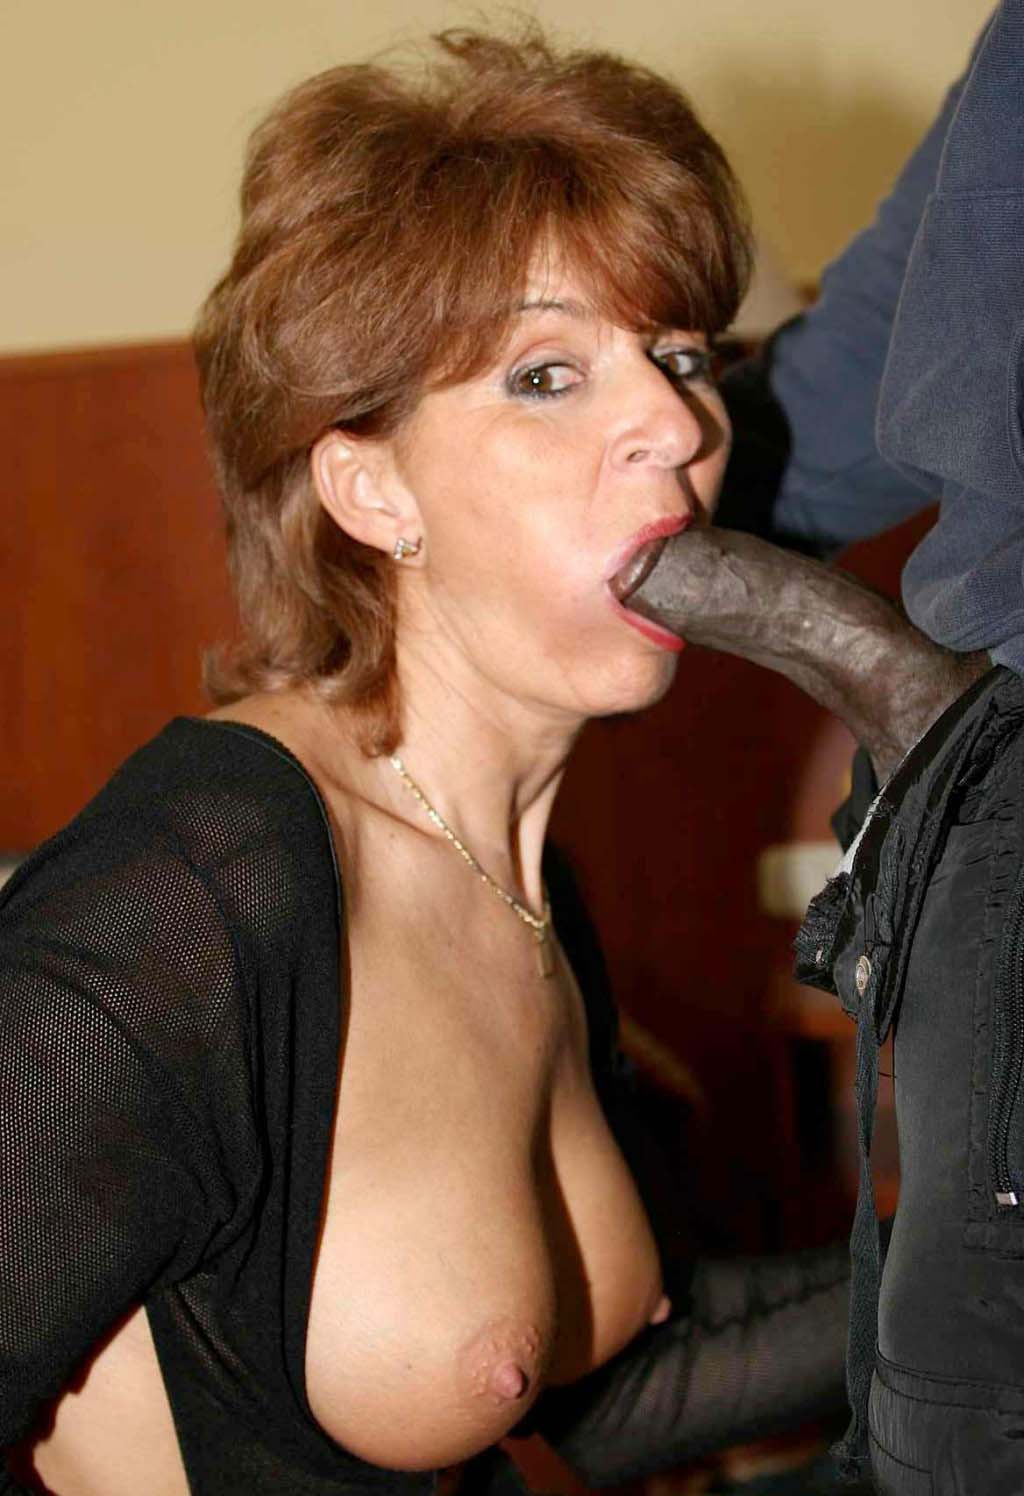 Amateur milf black stockings